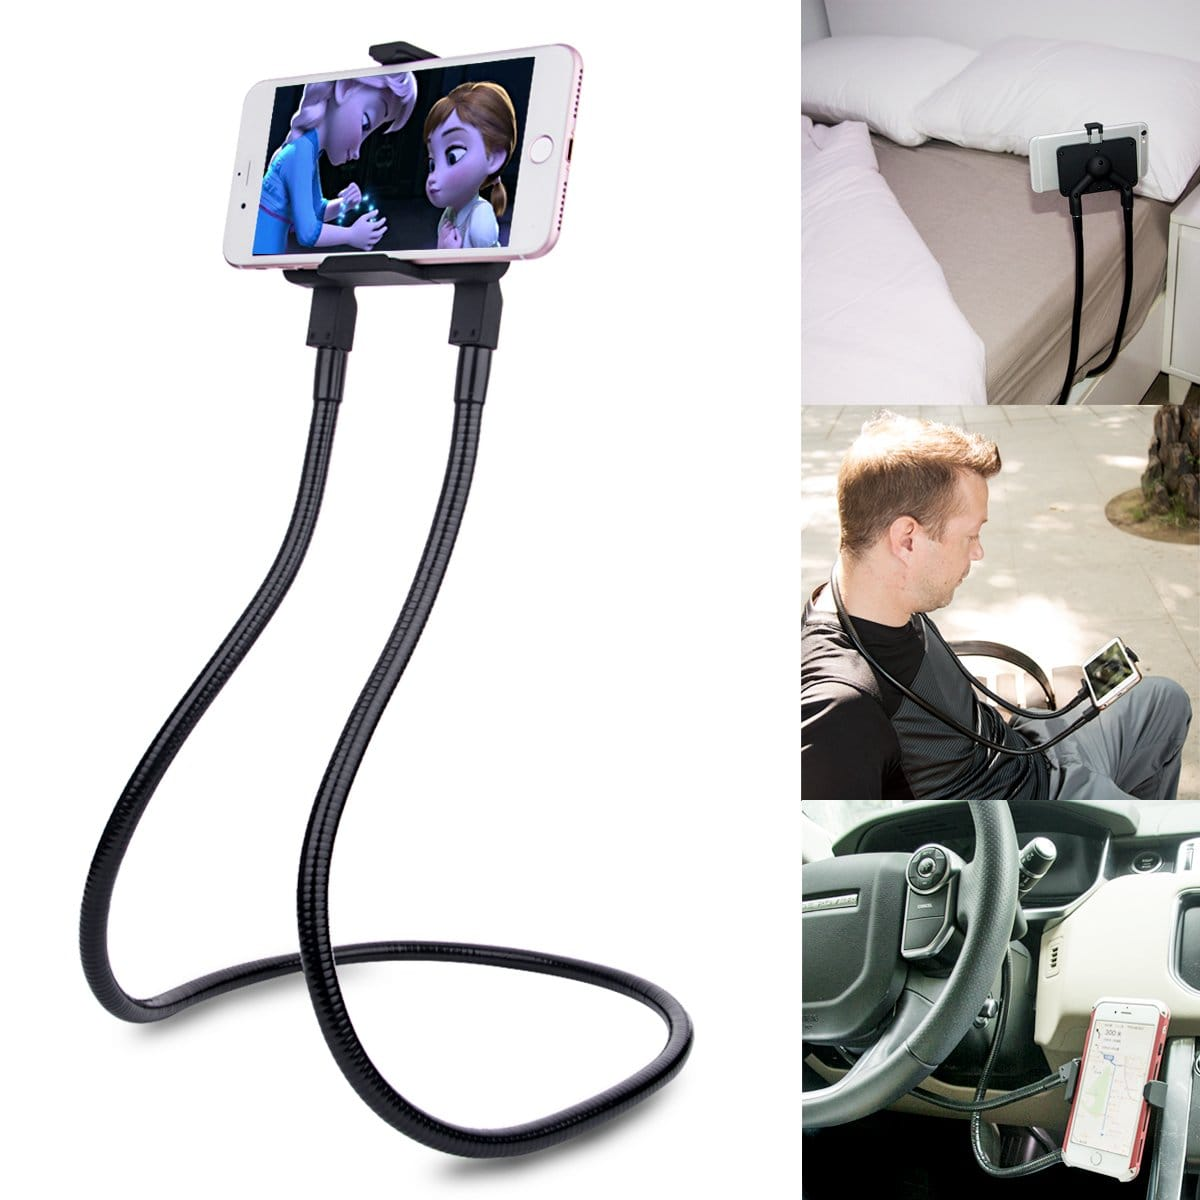 B-Land Cell Phone Holder, Free Rotating Mounts ,Universal Mobile Phone Stand (Black) $13.25